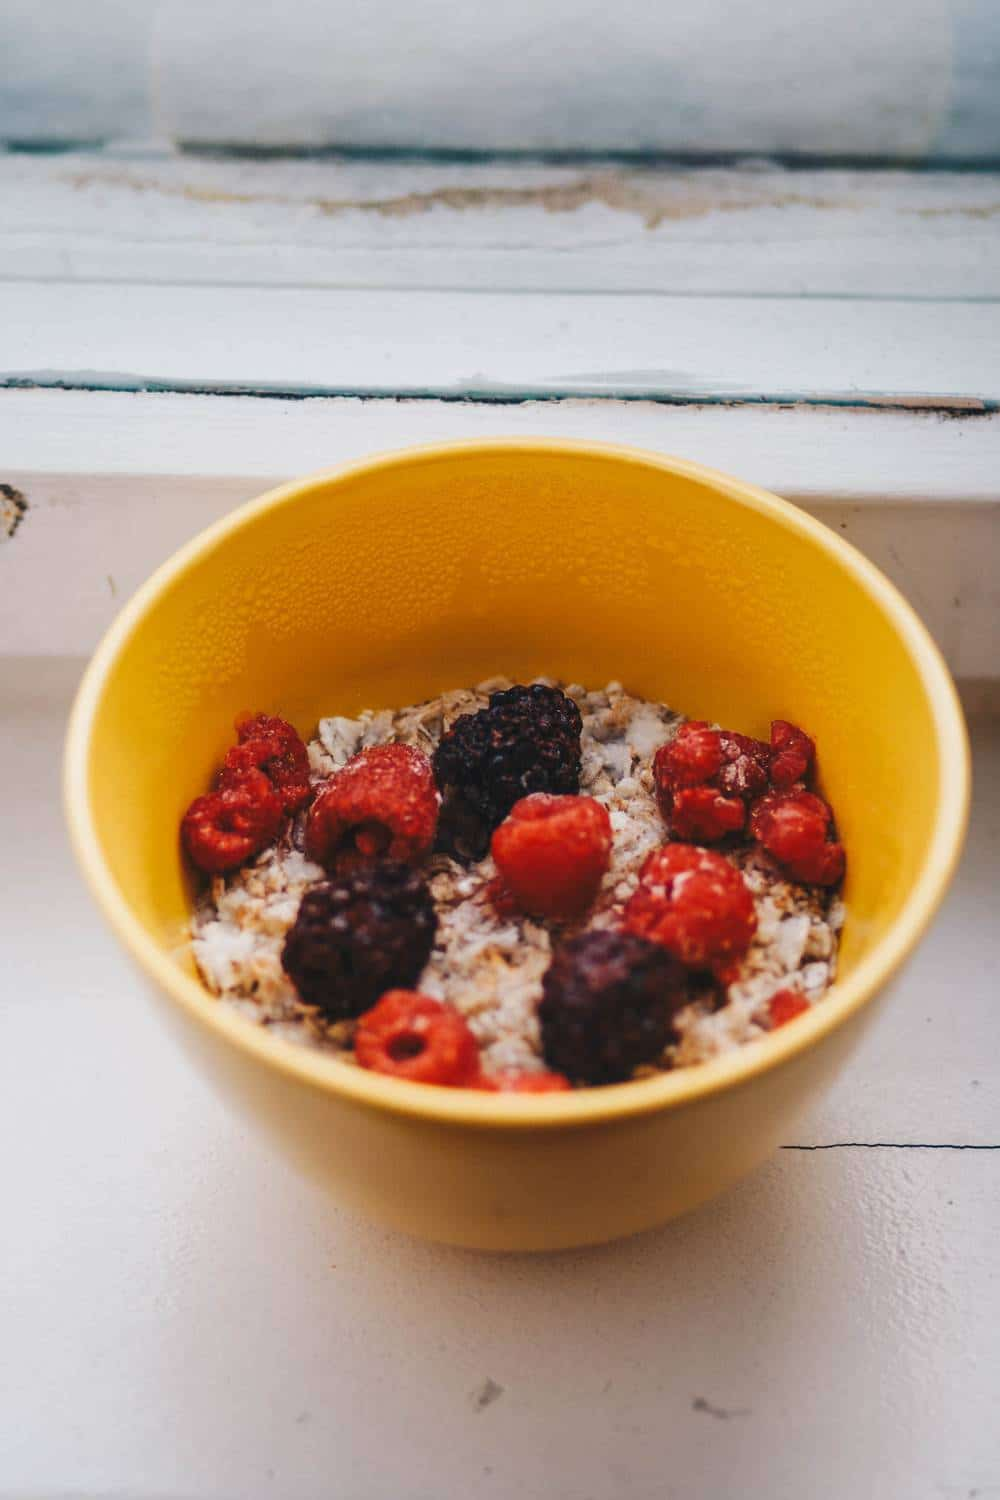 Does overnight oats need to be cooked?